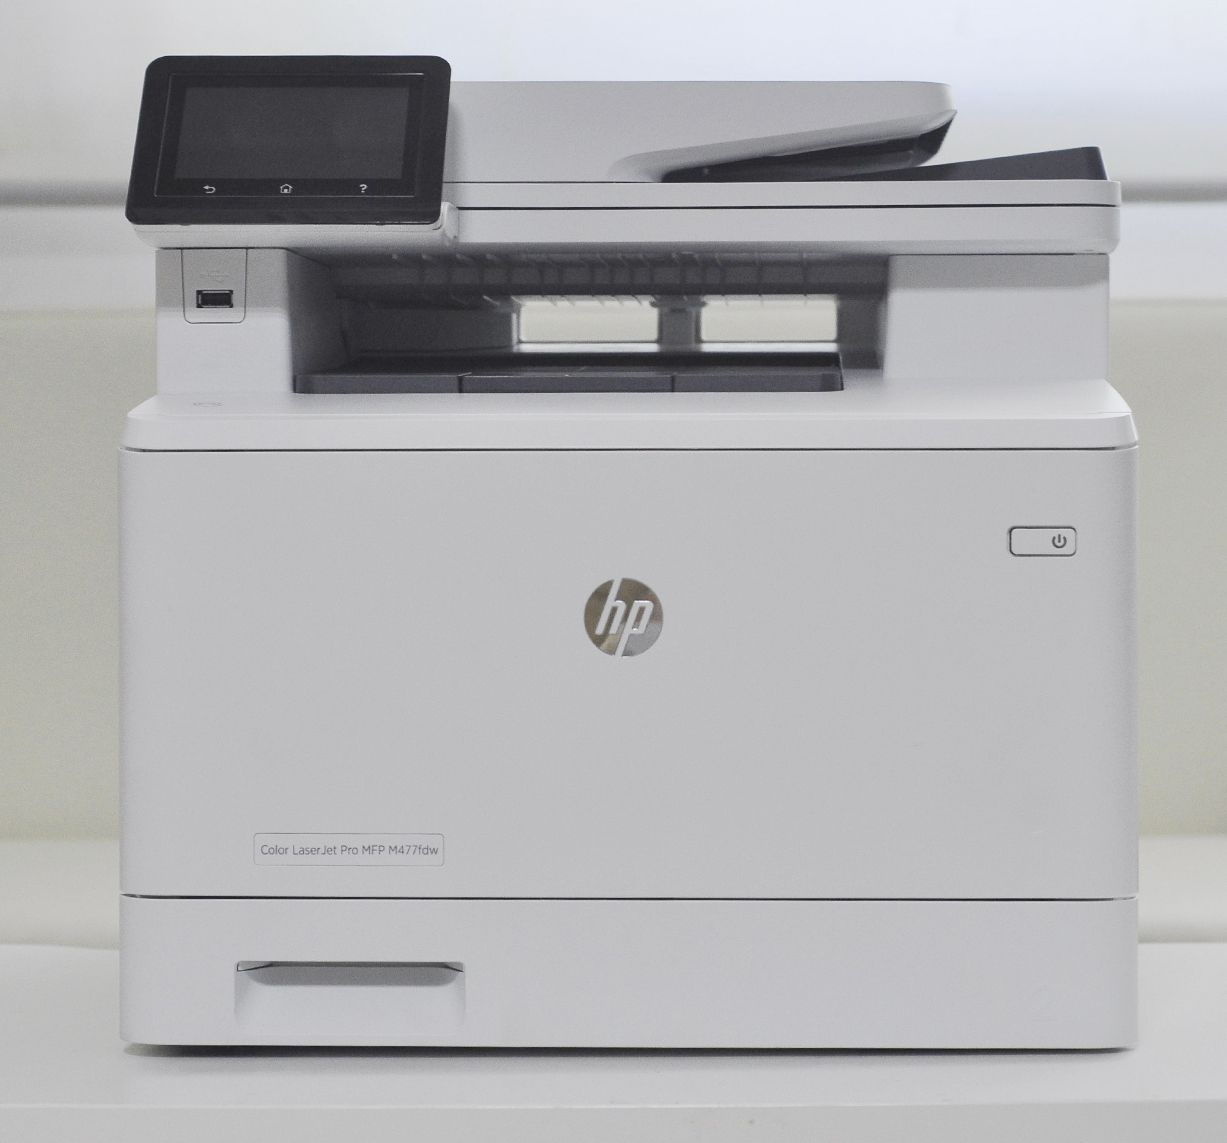 Best color printing quality - Strong Features Good Print Quality Hp S Color Laserjet Pro Mfp M477fdw